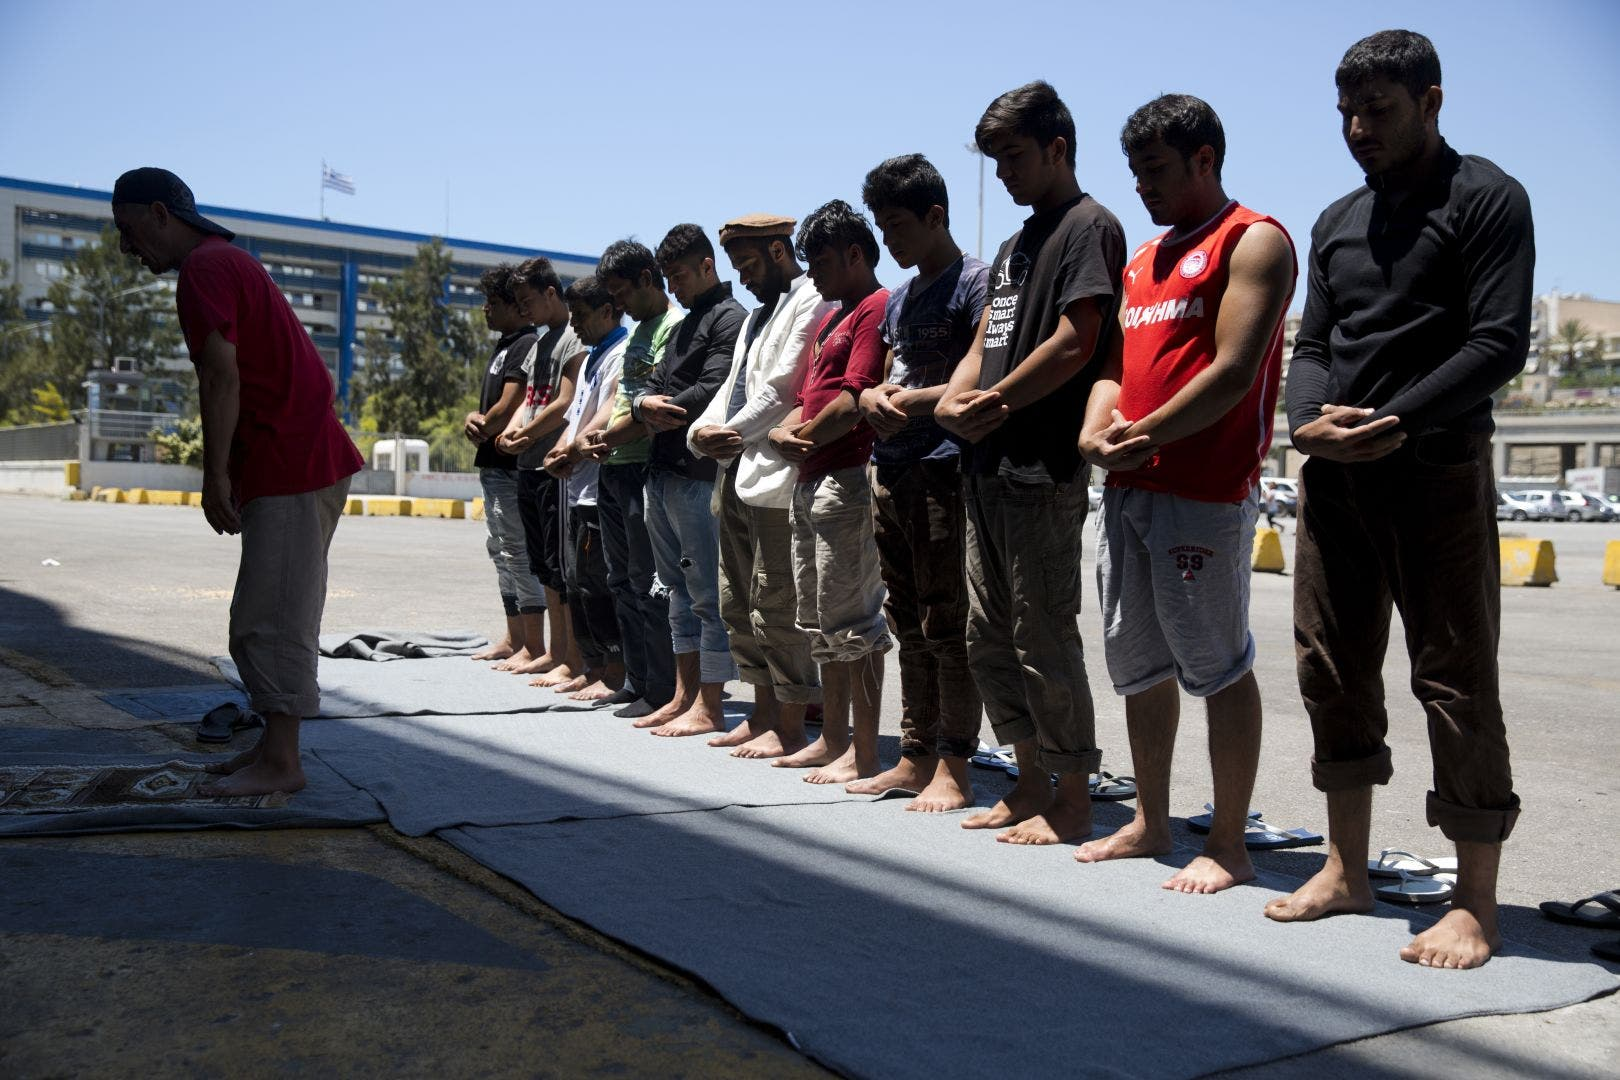 Afghan migrants stranded in Greece, pray on a dock at the port of Piraeus, near Athens on the first day of the holy fasting month of Ramadan. (AP)